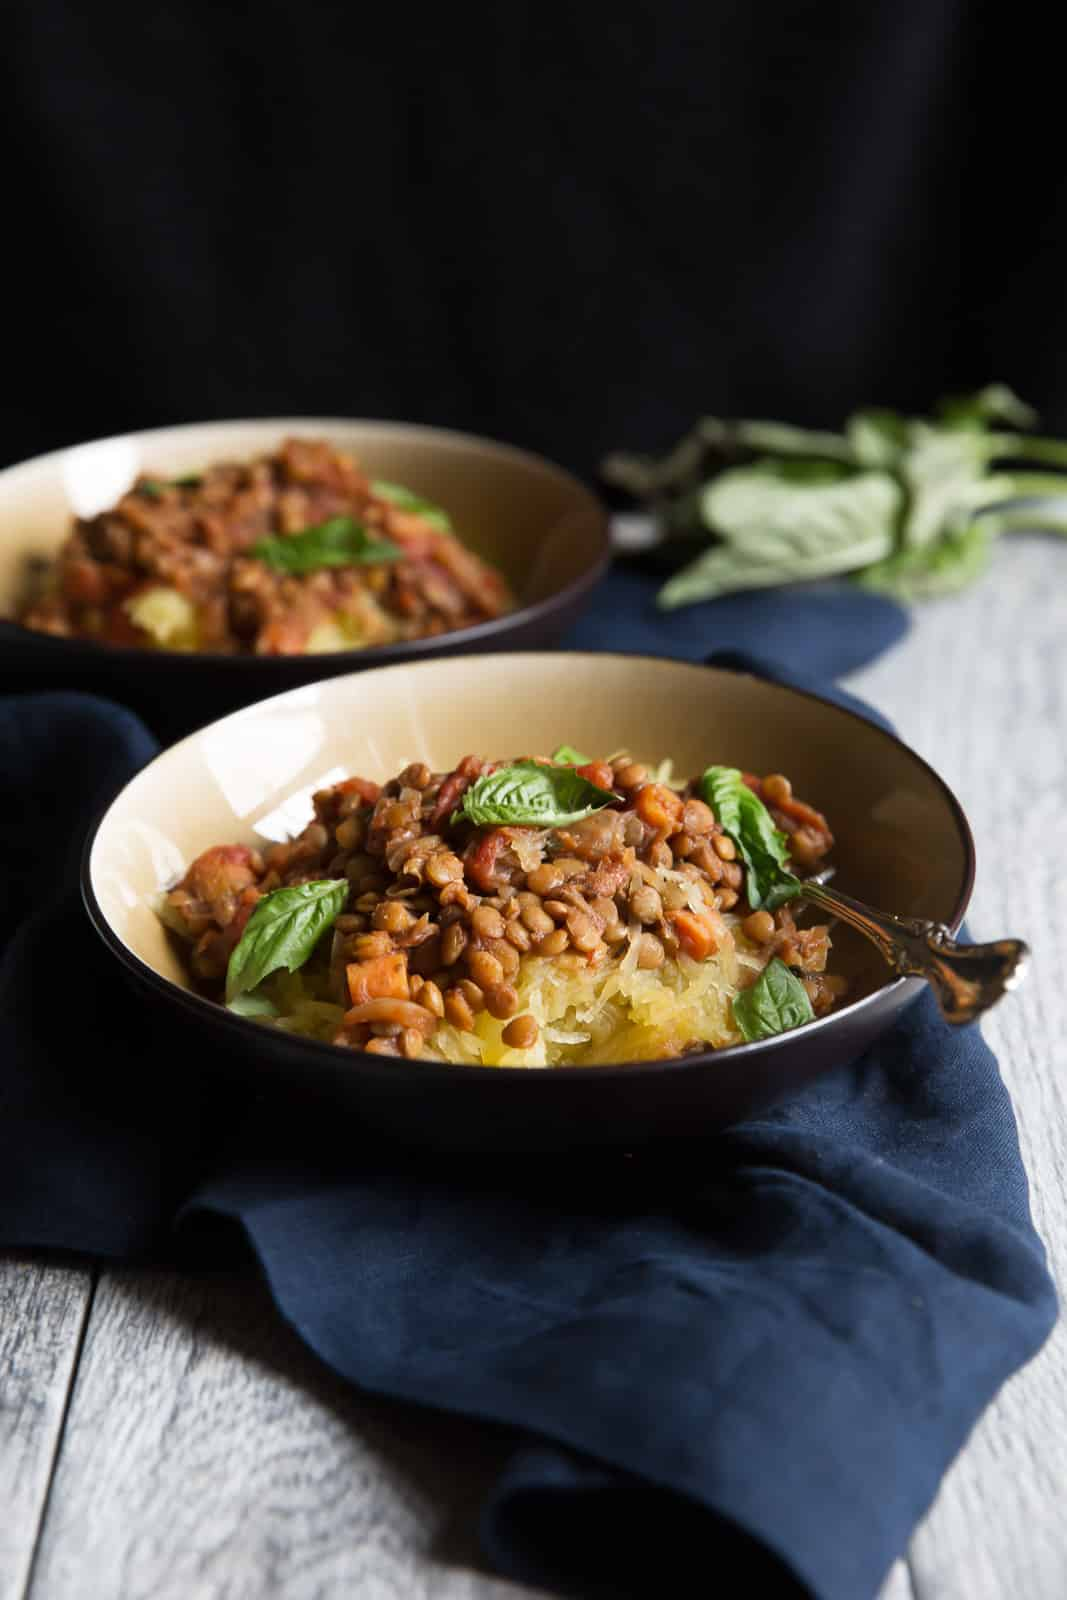 Try these 52 healthy slow cooker recipes for easy gluten-free and low-carb meals that taste amazing!